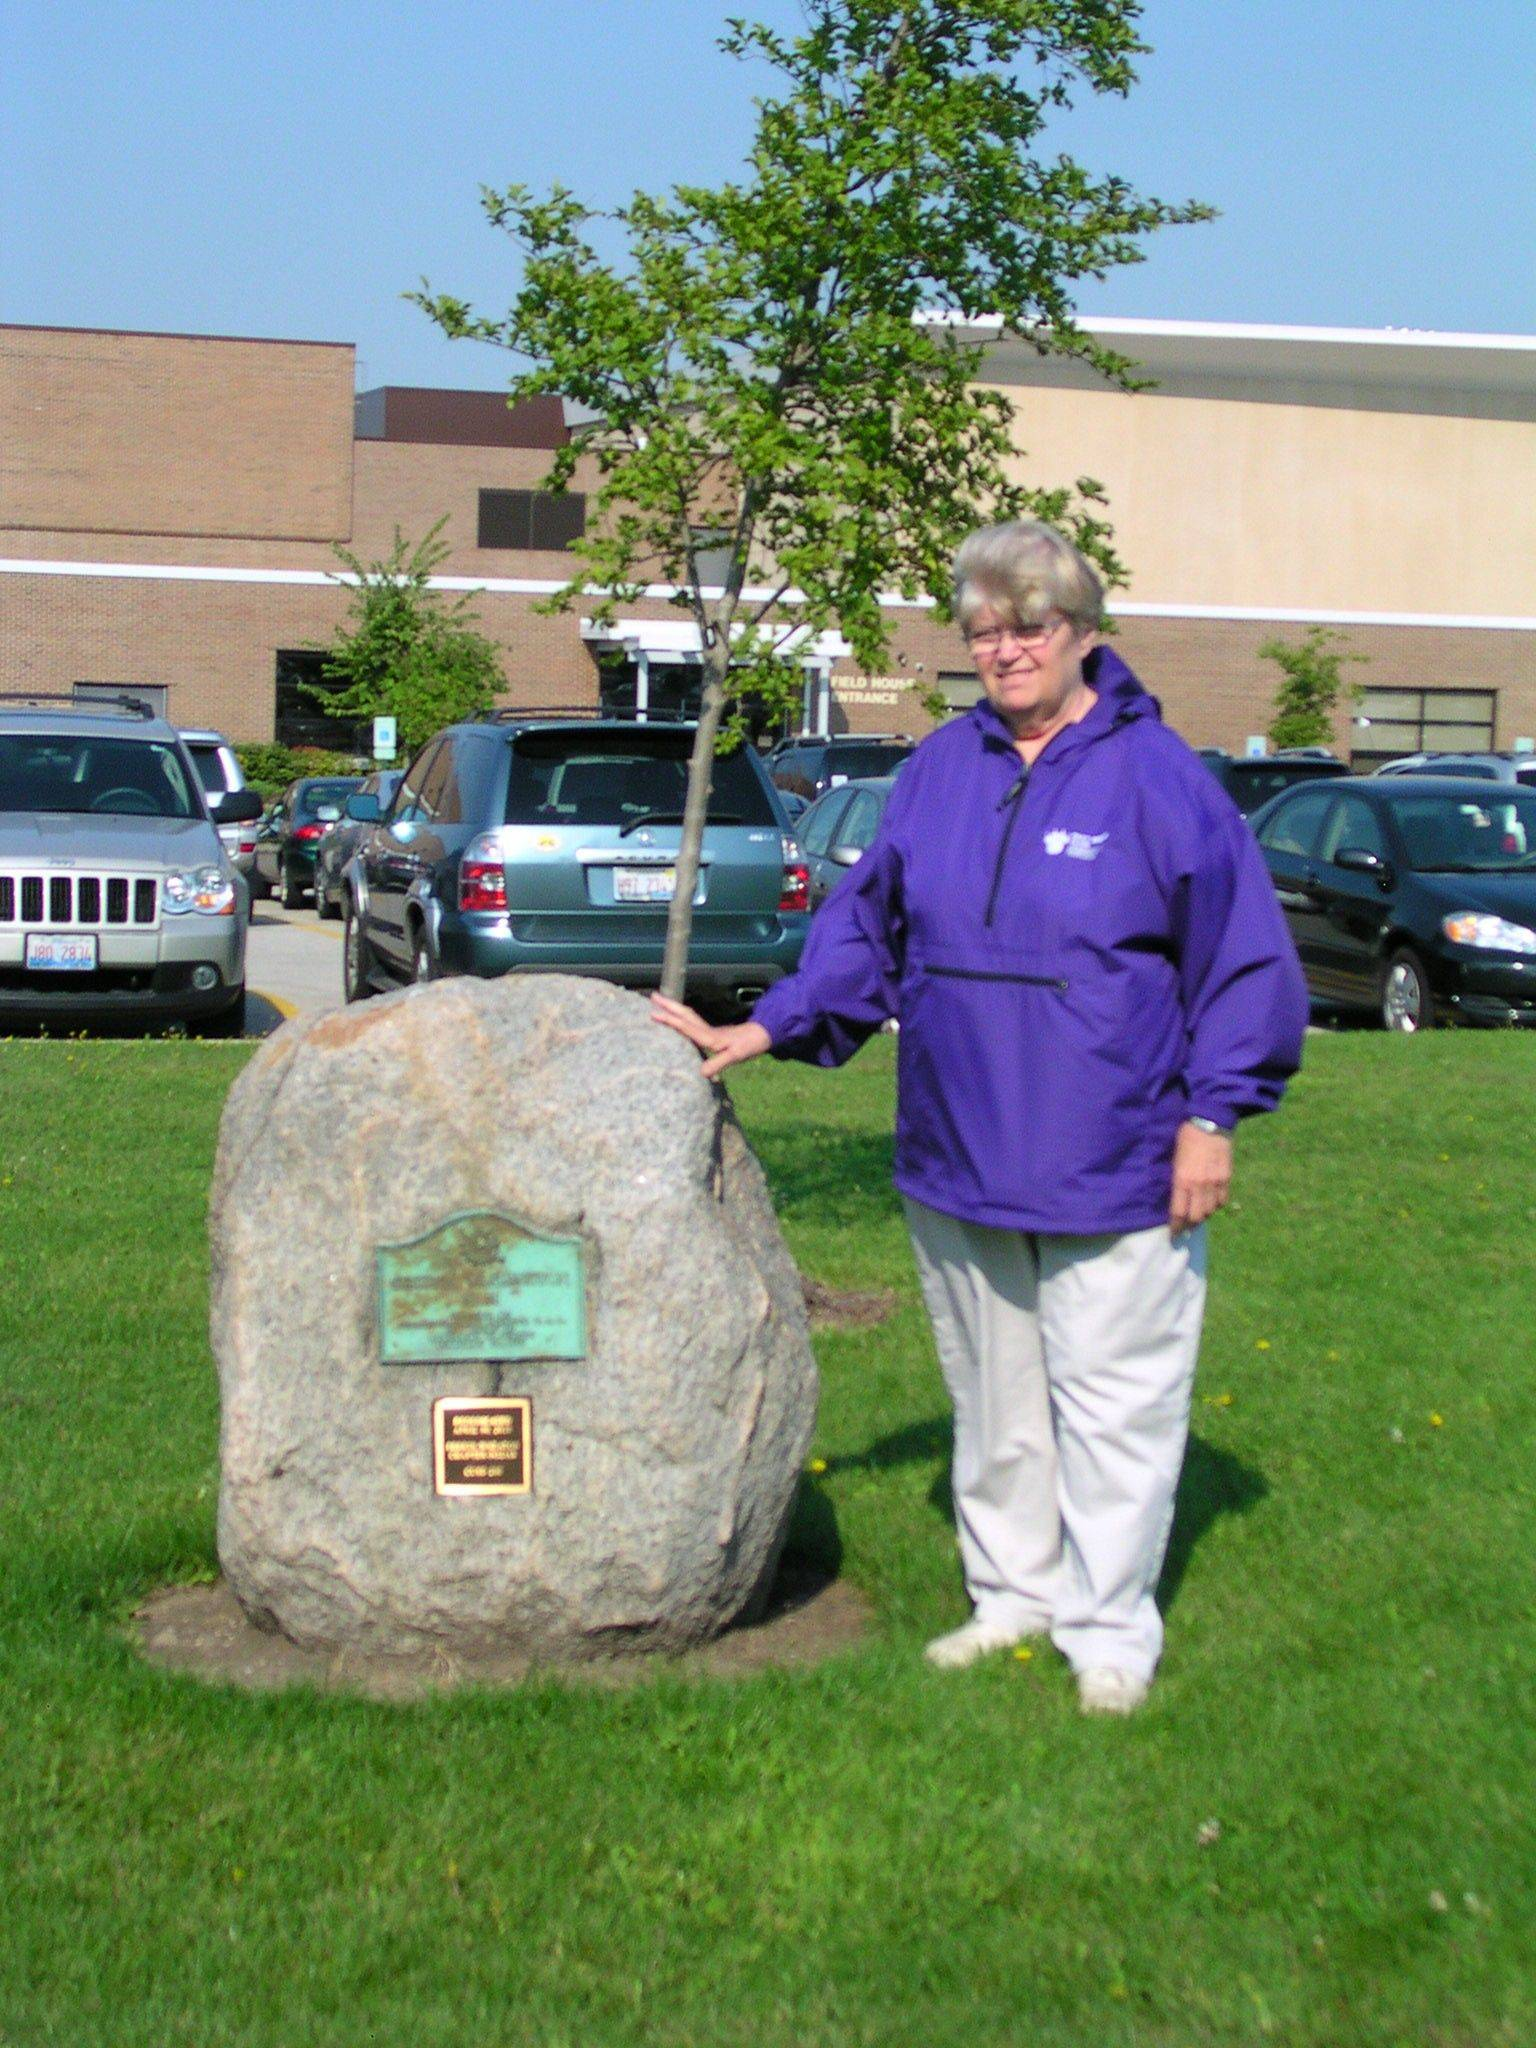 Linda Wingstrom of Lisle is a member of the Perrin-Wheaton Daughters of the American Revolution chapter. The chapter had dedicated the boulder (in honor of early members) at Wheaton Community High School in 1932. The chapter worked with the school district to move it in April 2010 to Wheaton Warrenville South High School, where it was rededicated, along with an elm tree, on Arbor Day, April 30, 2010.